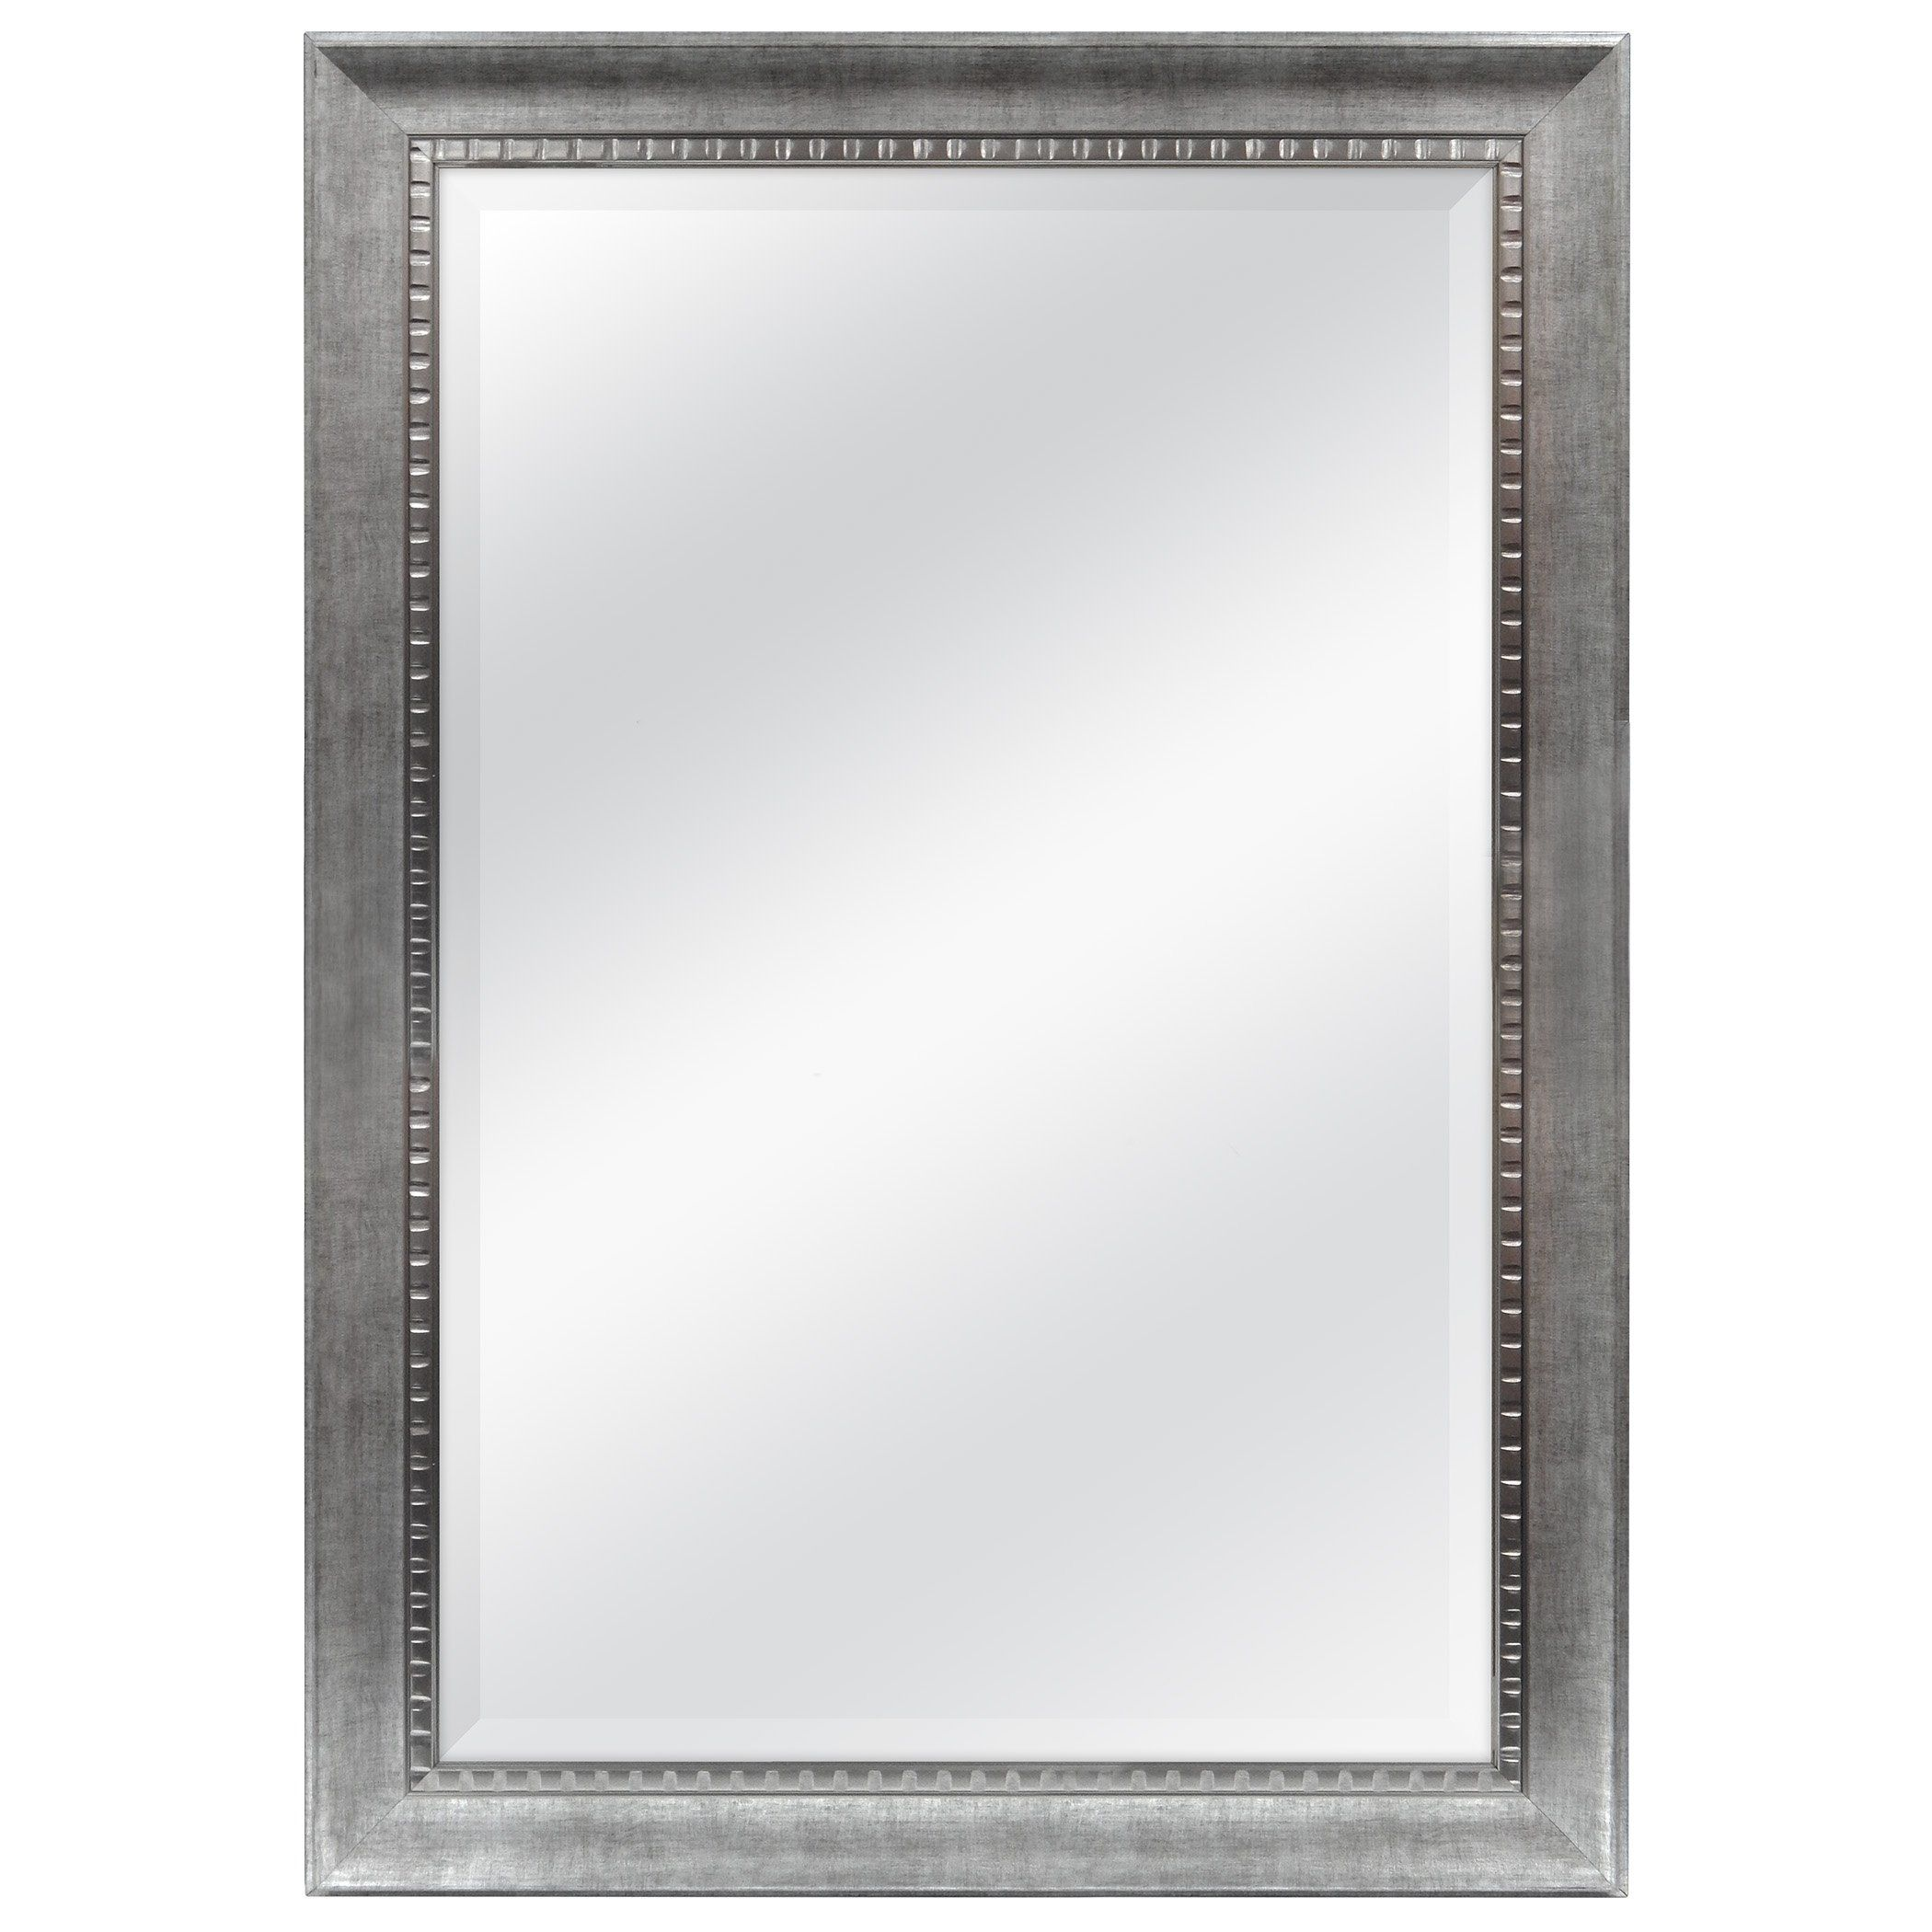 MCS 29.5x41.5 Inch Frame with 24x36 Inch Sloped Mirror with Dental ...